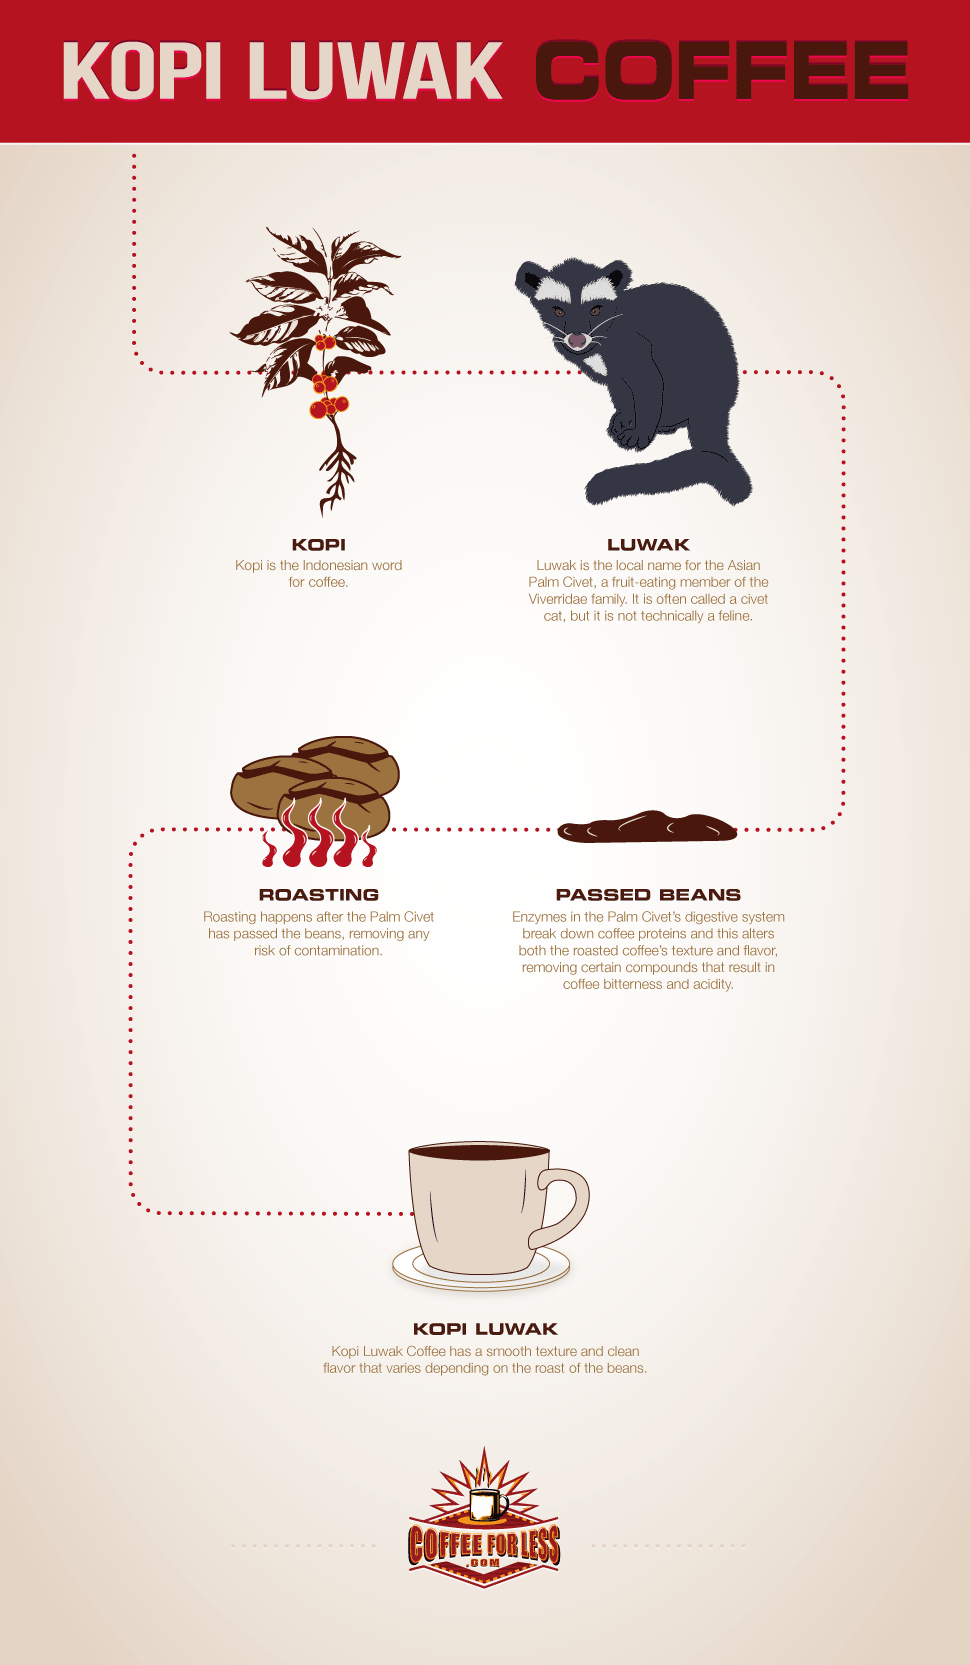 Kopi Luwak is a one-of-a-kind coffee that's highly sought after. Learn the secrets of this renowned beverage through CoffeeForLess infographics.